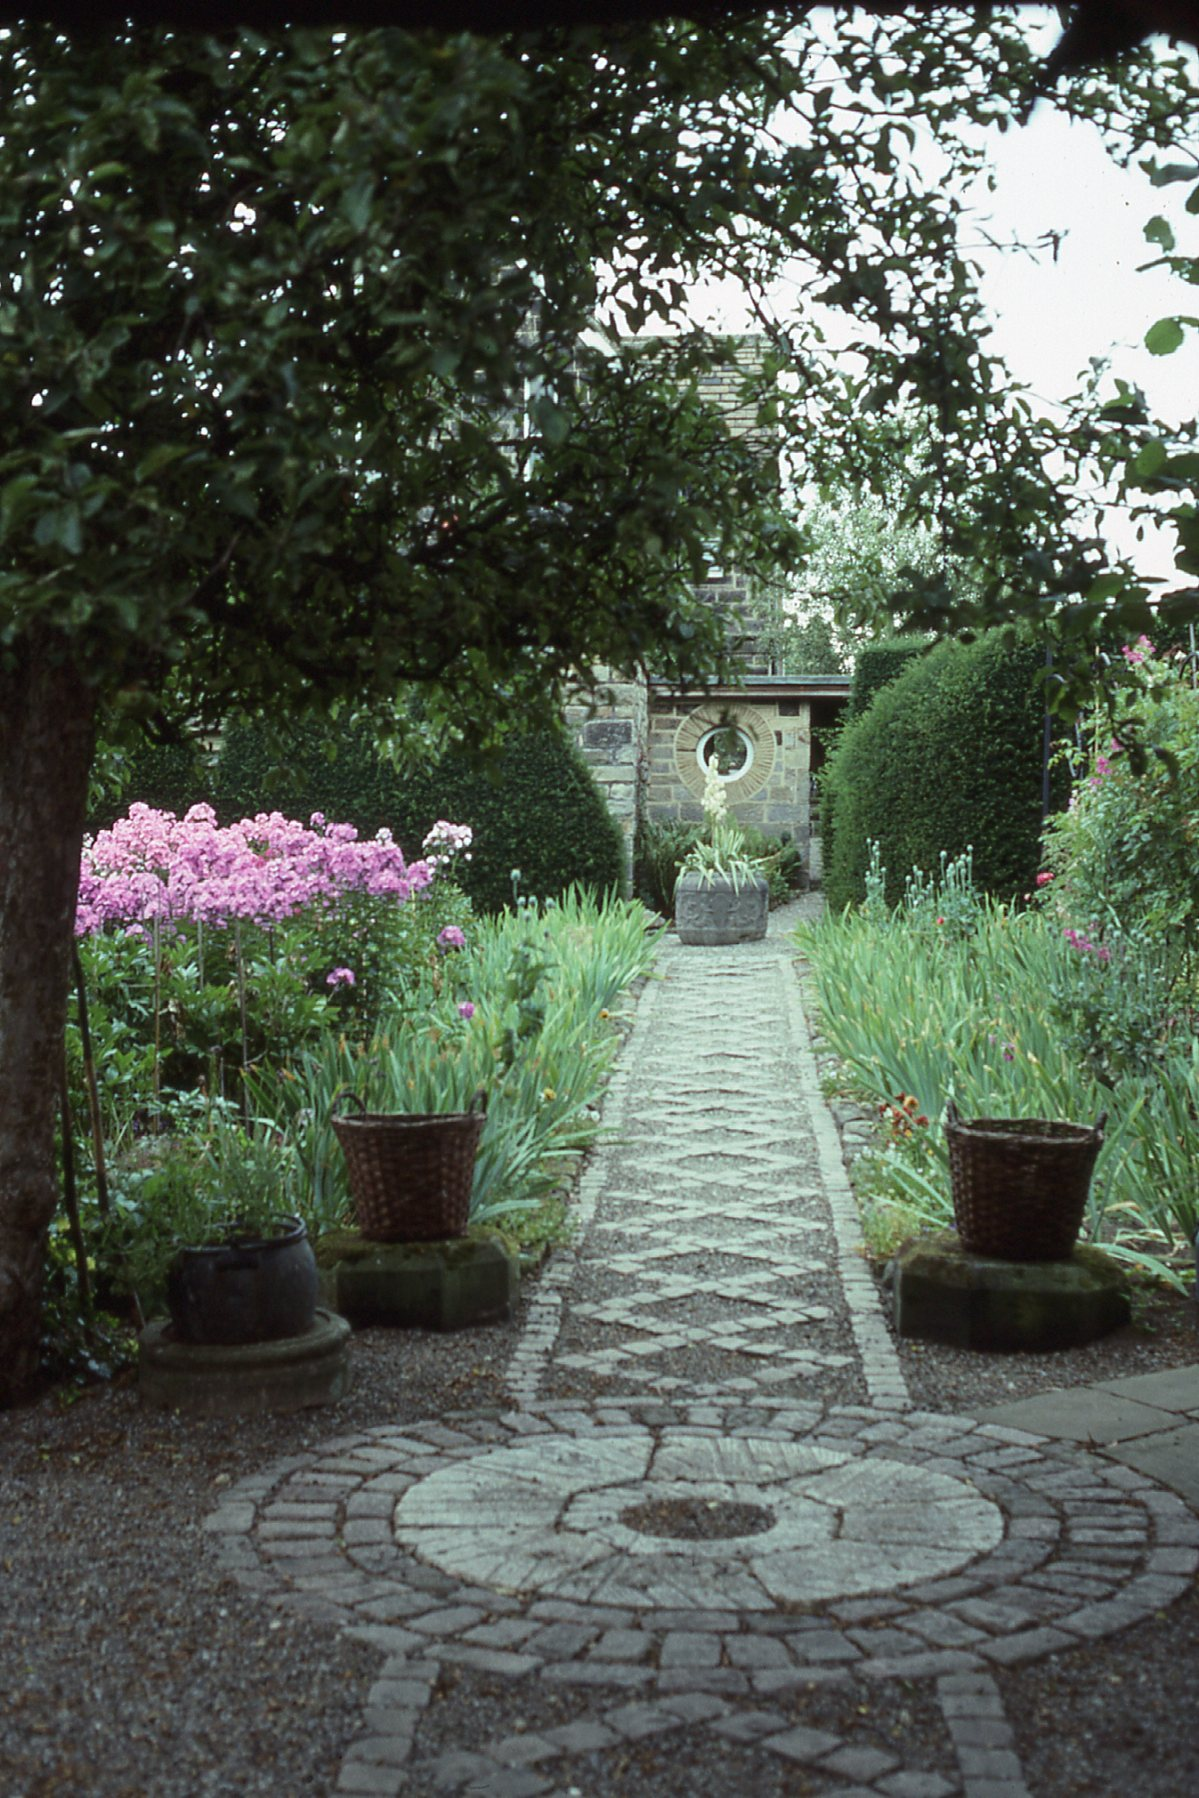 A diamond-patterned stone path leading from the home is the focal point of a Yorkshire garden.